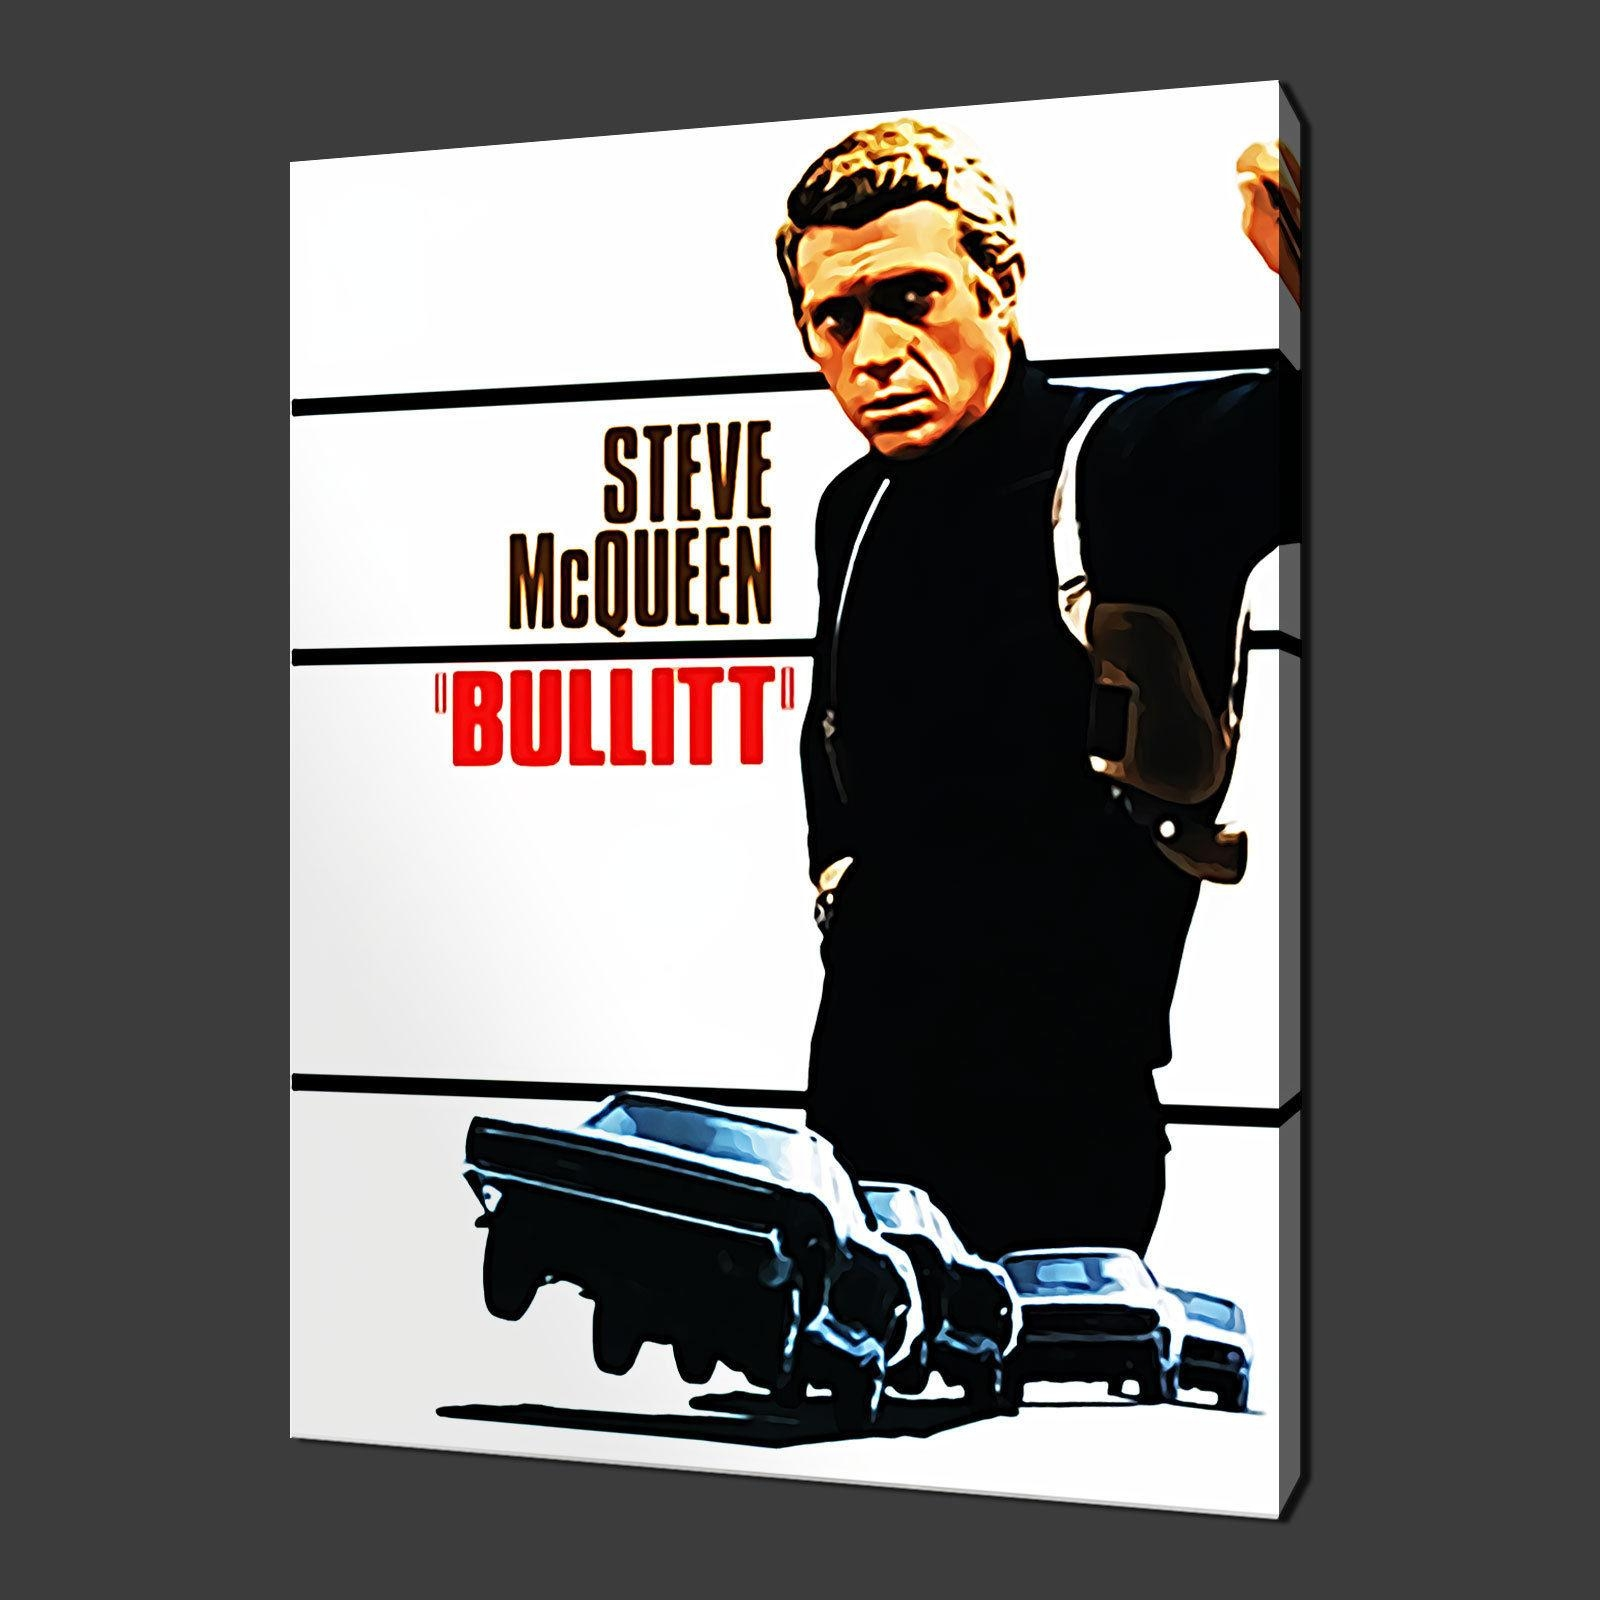 Steve Mcqueen Bullitt Canvas Wall Art Pictures Prints 30 X 20 Inch Pertaining To Steve Mcqueen Wall Art (View 5 of 20)